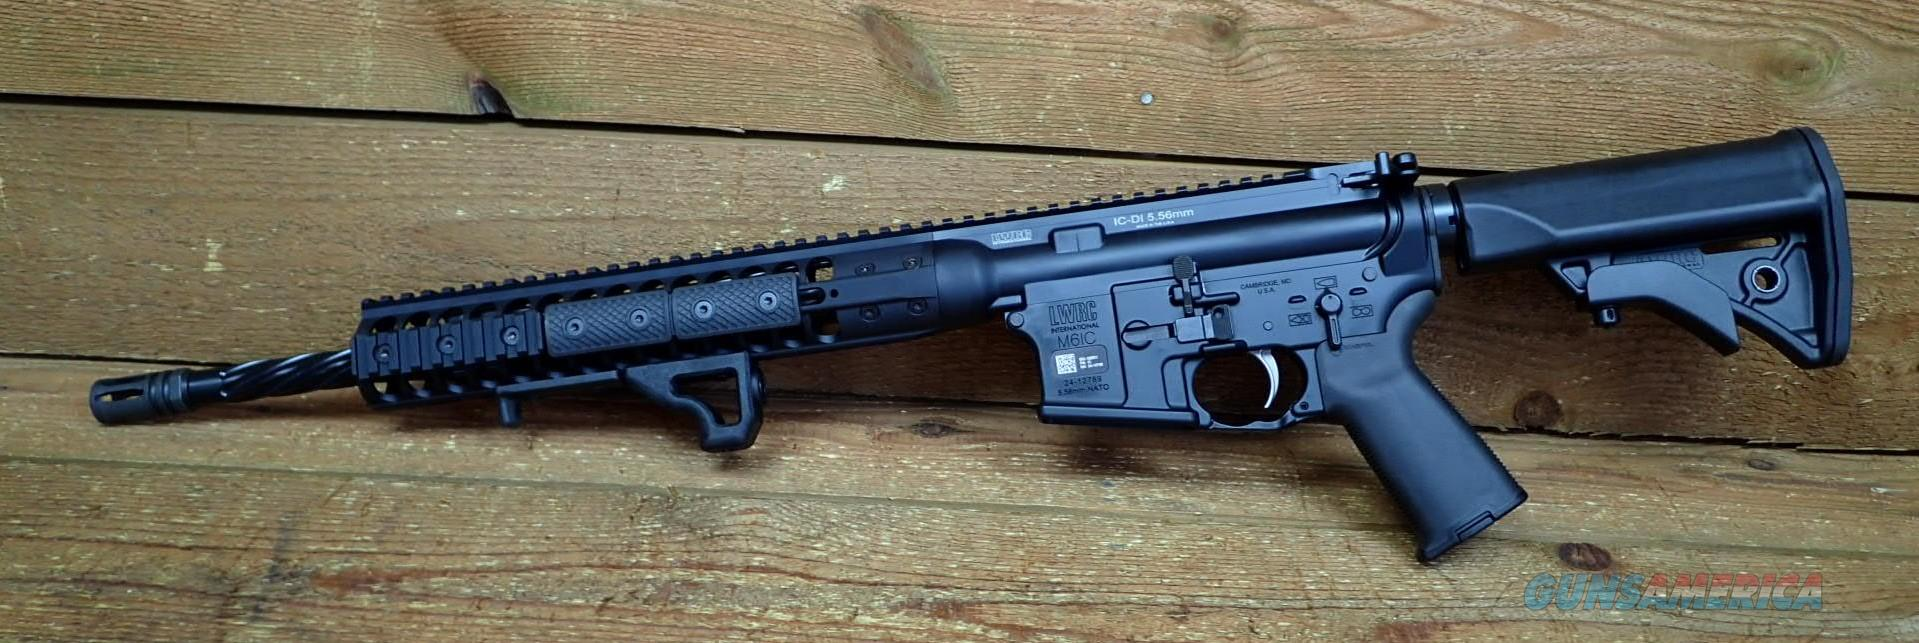 "Easy Pay $88 LWRC with 60 rd pmag and 30  rd p-mag Individual Carbine Mil-Spec Direct Impingement Rifle A2 Birdcage Magpul ICDIR5B16 5.56mm NATO, 16.1""Fore Grip Cold-Hammer Forged   Guns > Rifles > LWRC Rifles"